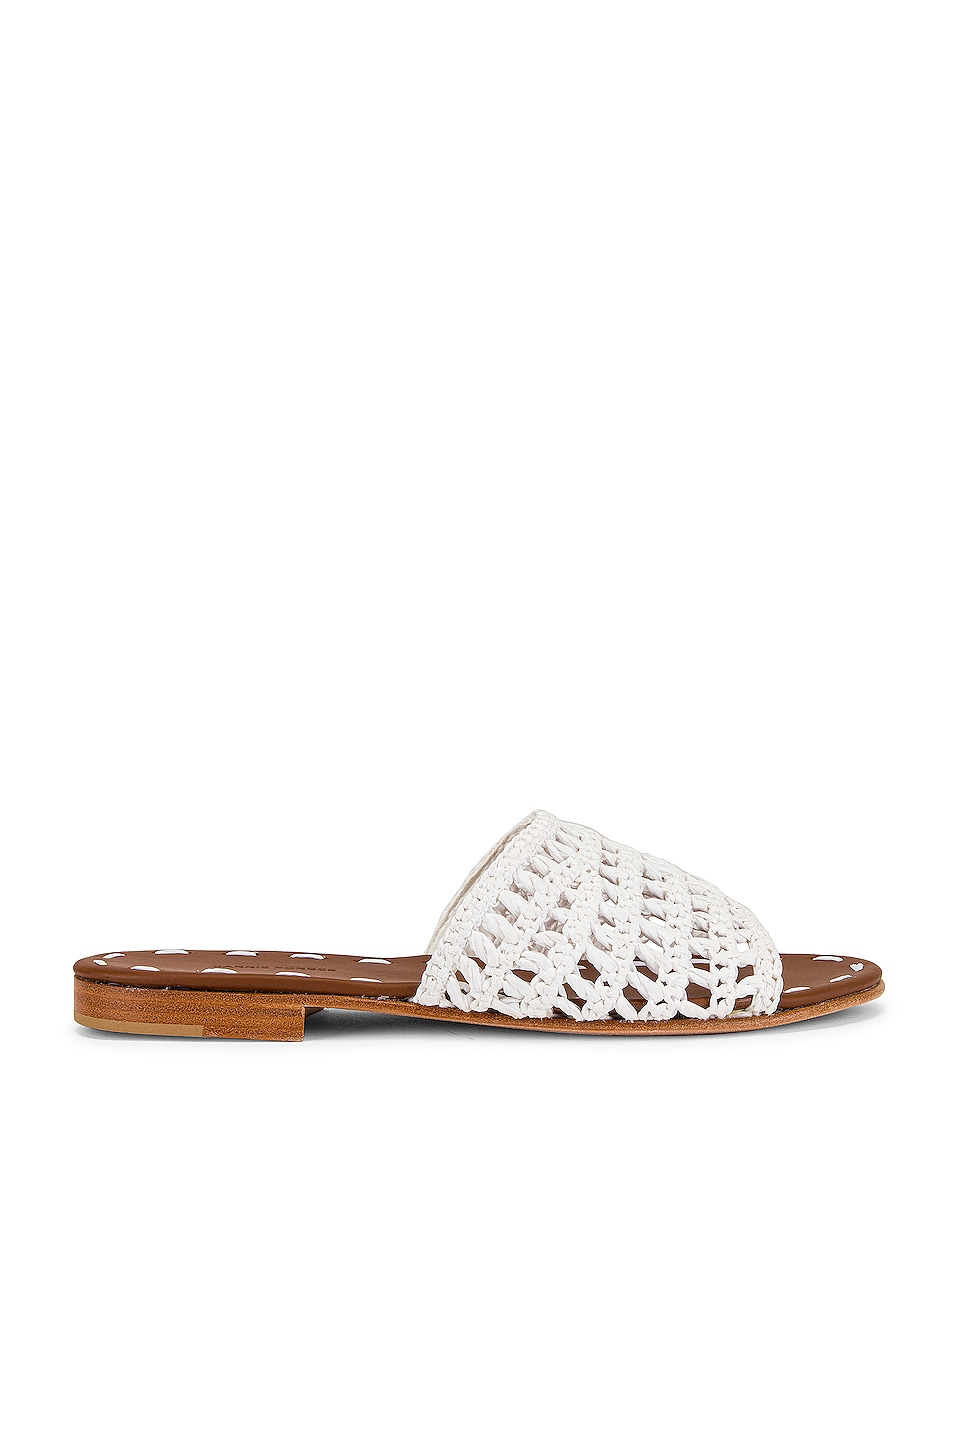 Carrie Forbes Mour Sandal in Blanc